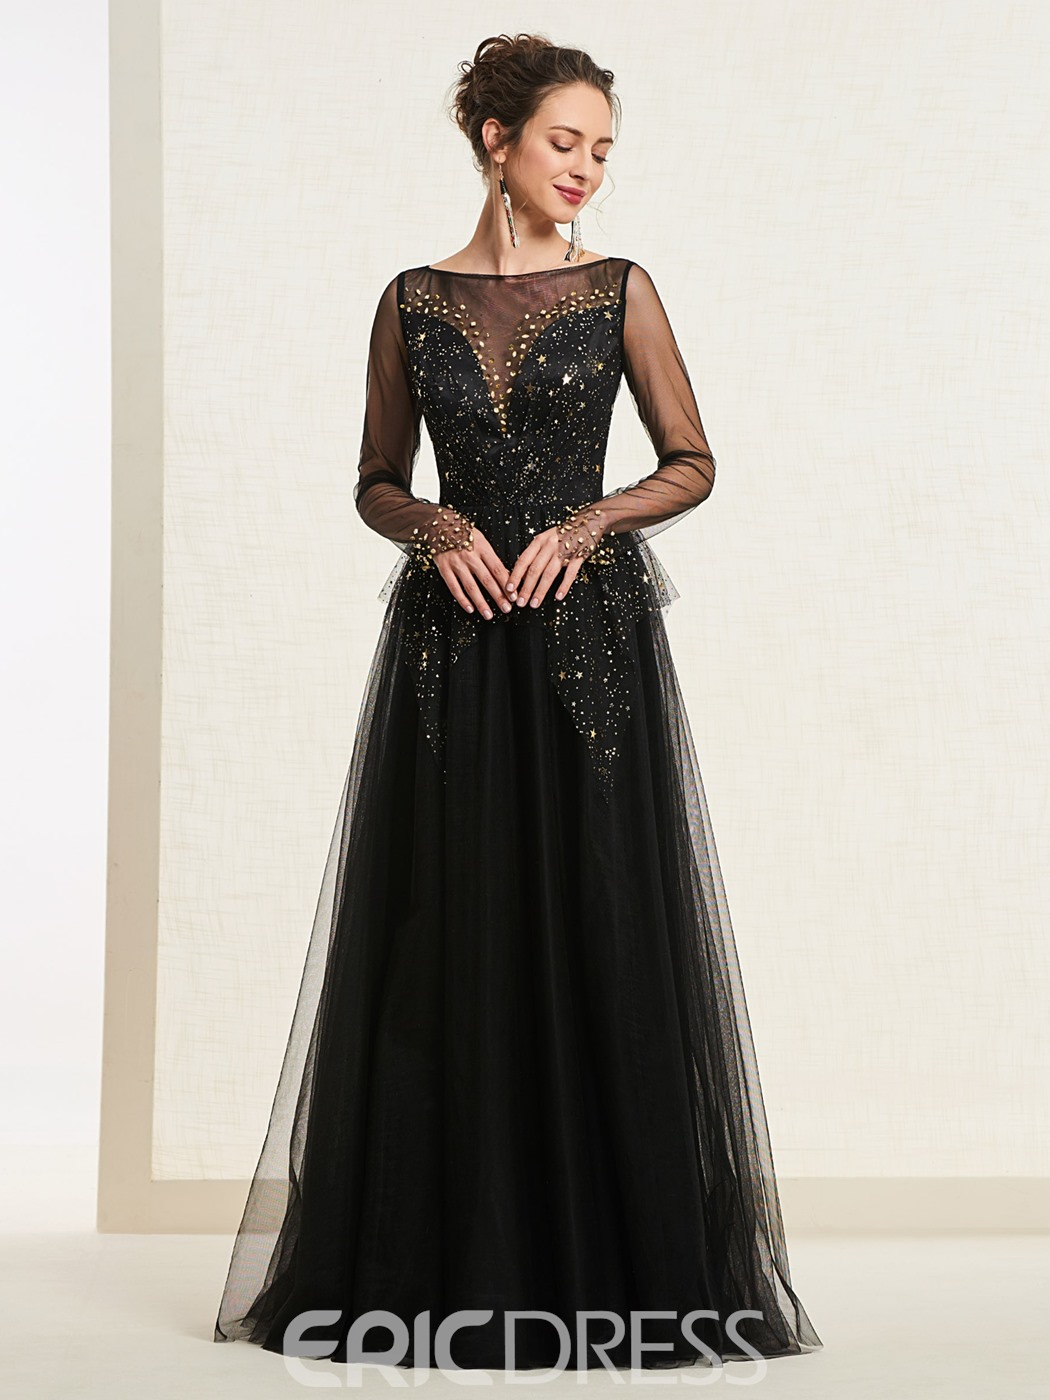 de900b08bf Ericdress A-Line Long Sleeve Starring Black Prom Dress 2019 13700102 ...